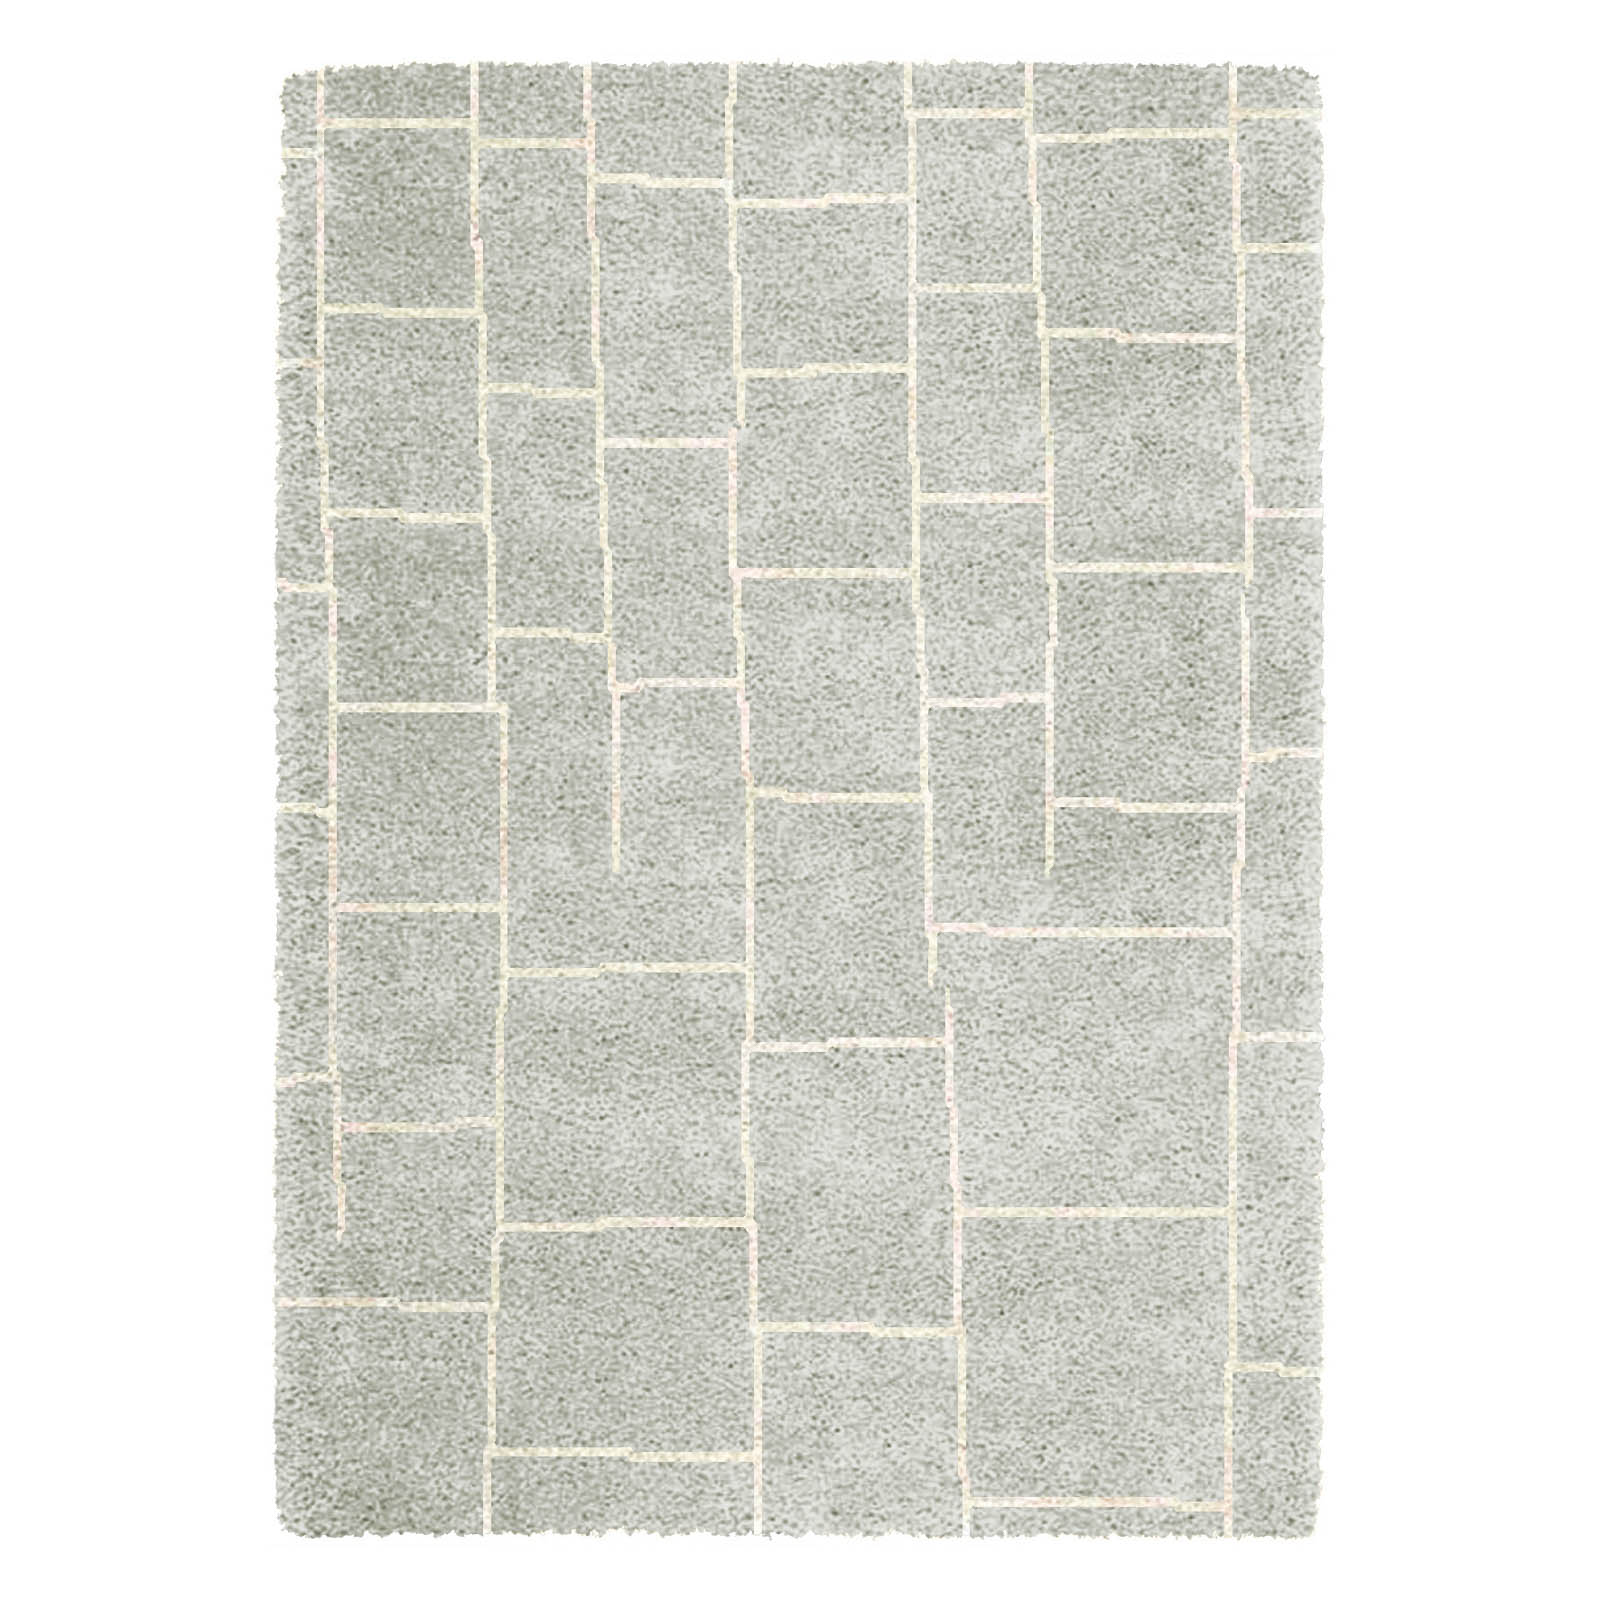 Logan Rugs LG05 in Grey and Ivory